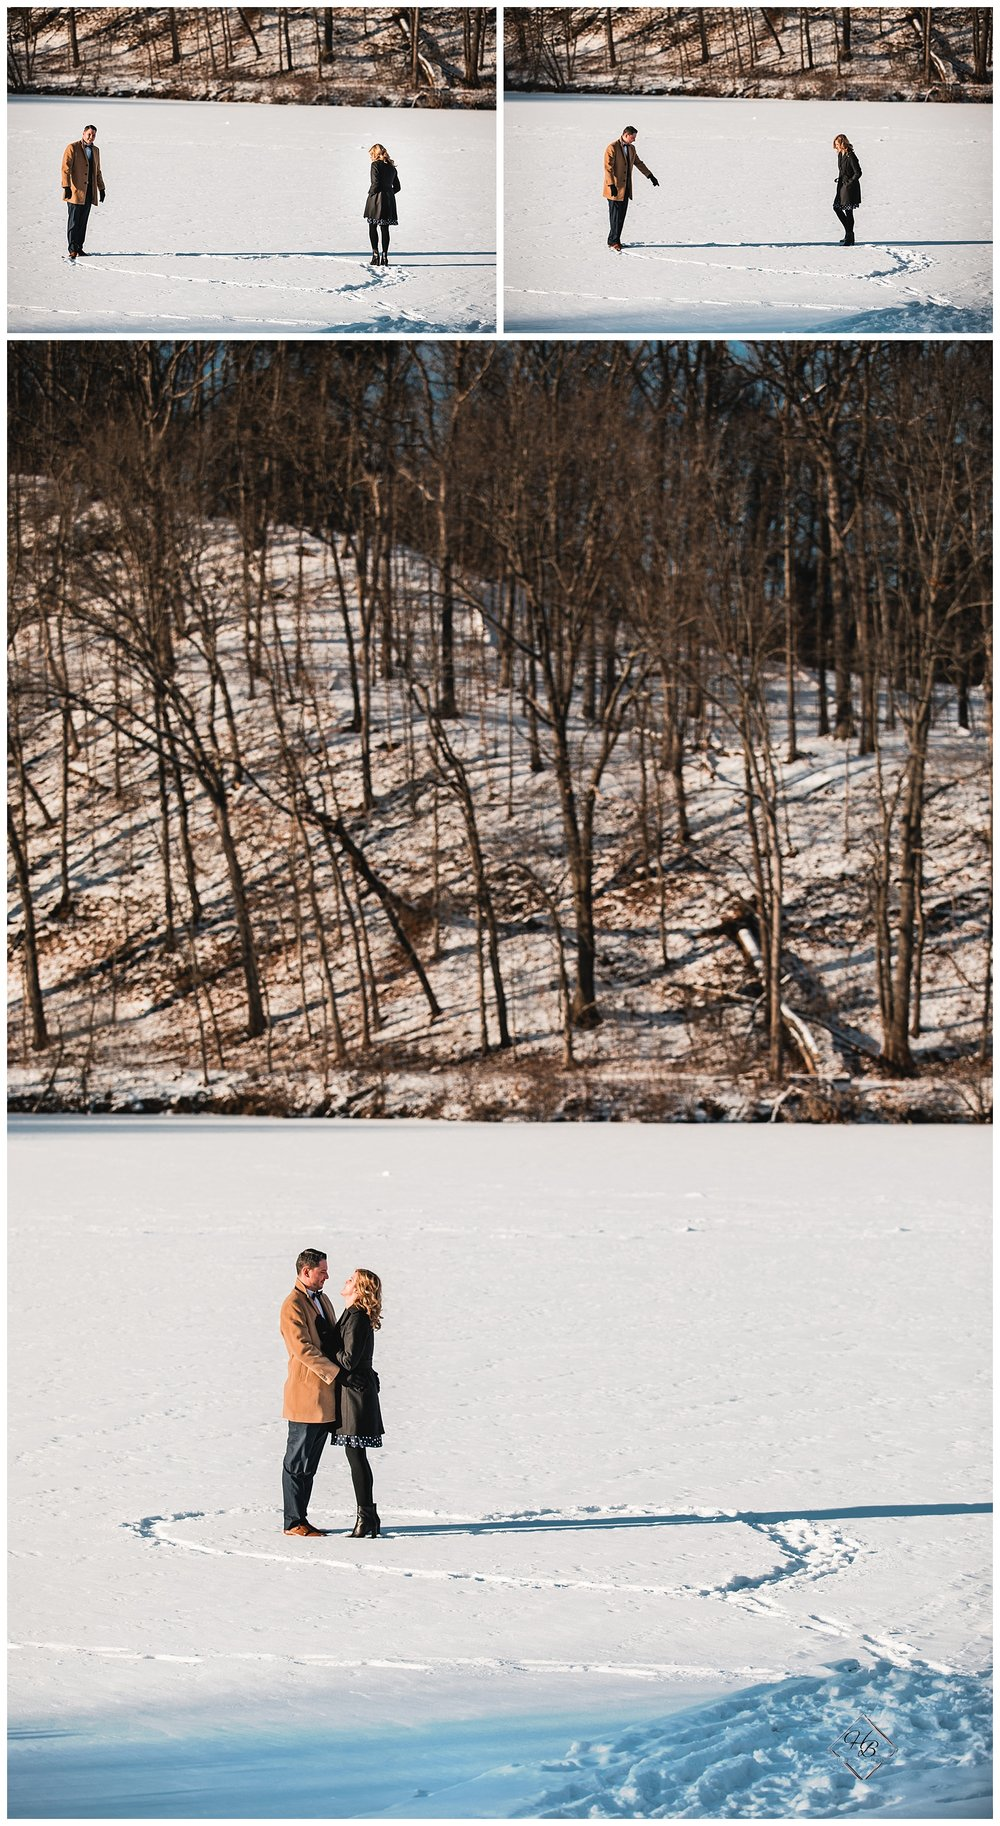 Snowy-Frozen-Lake-Pittsburgh-Engagement-Photography_0620.JPG